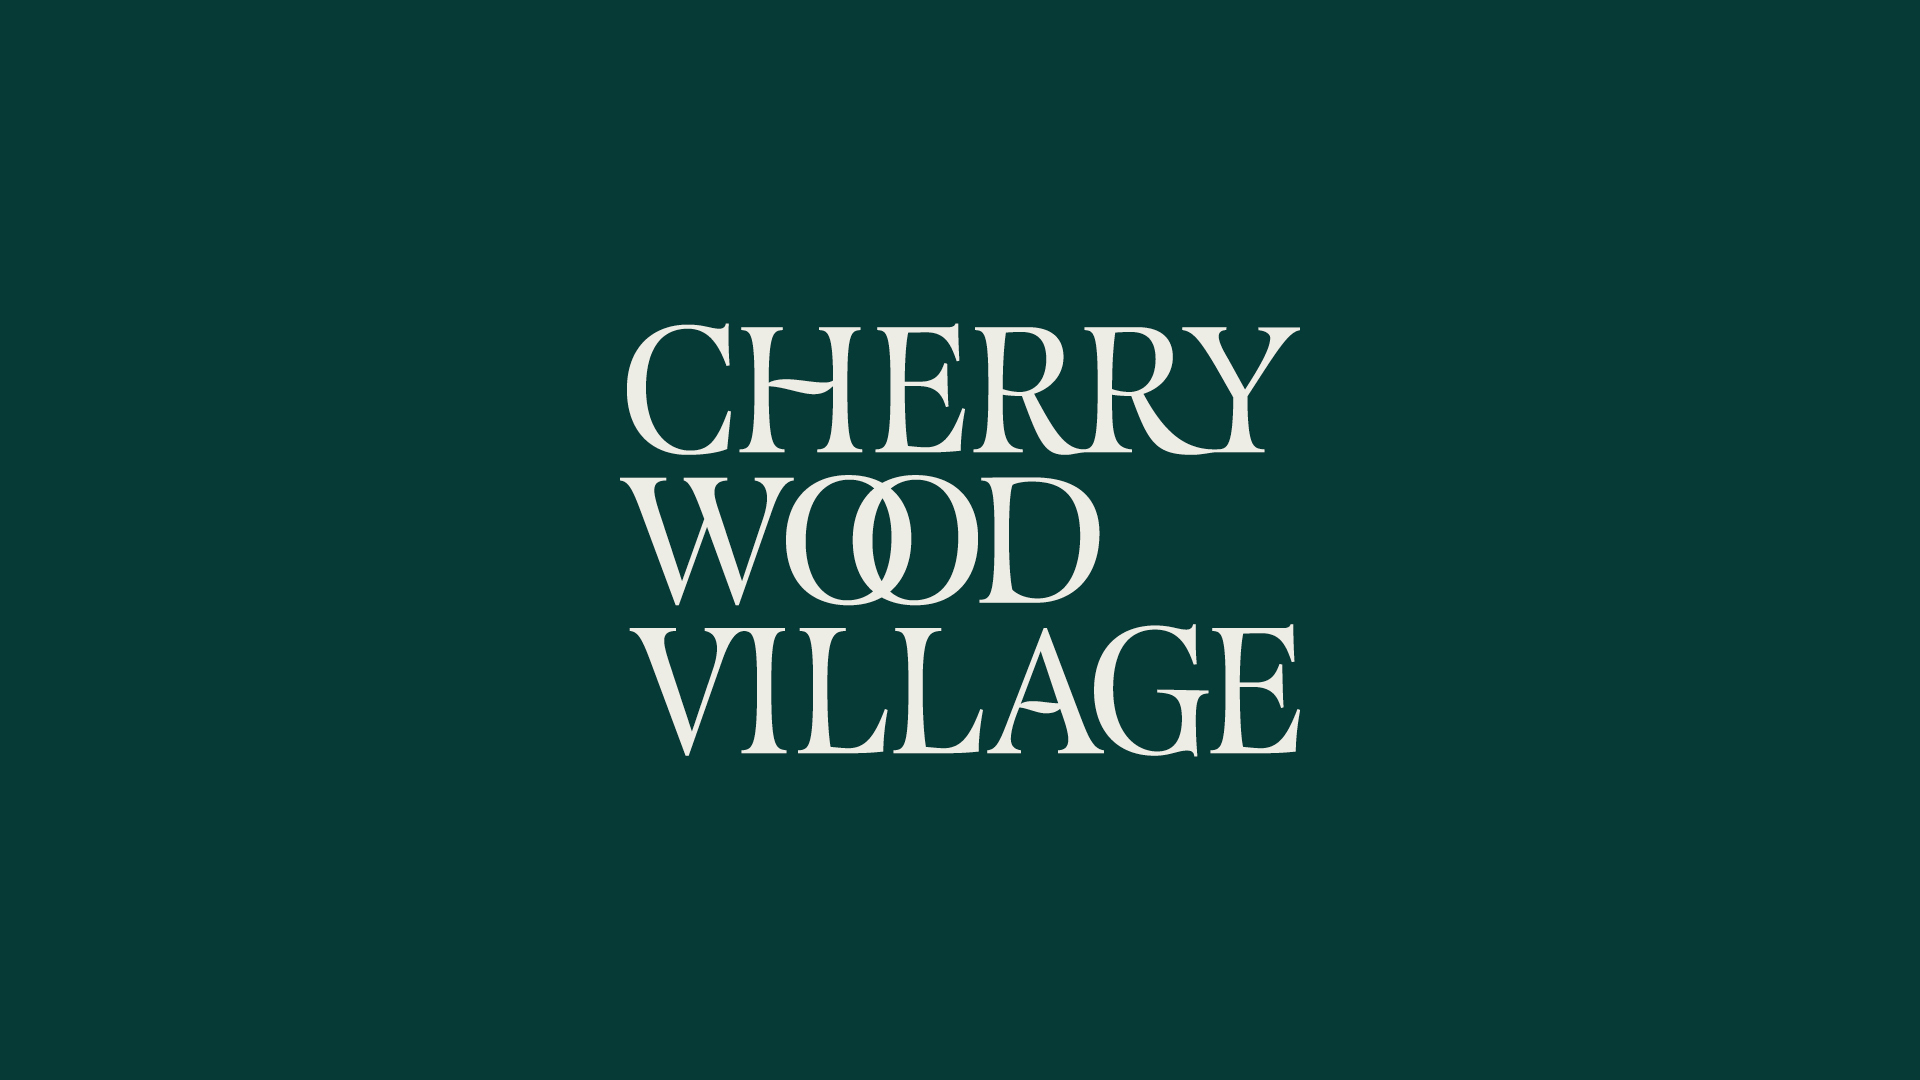 Cover image: Cherrywood Village